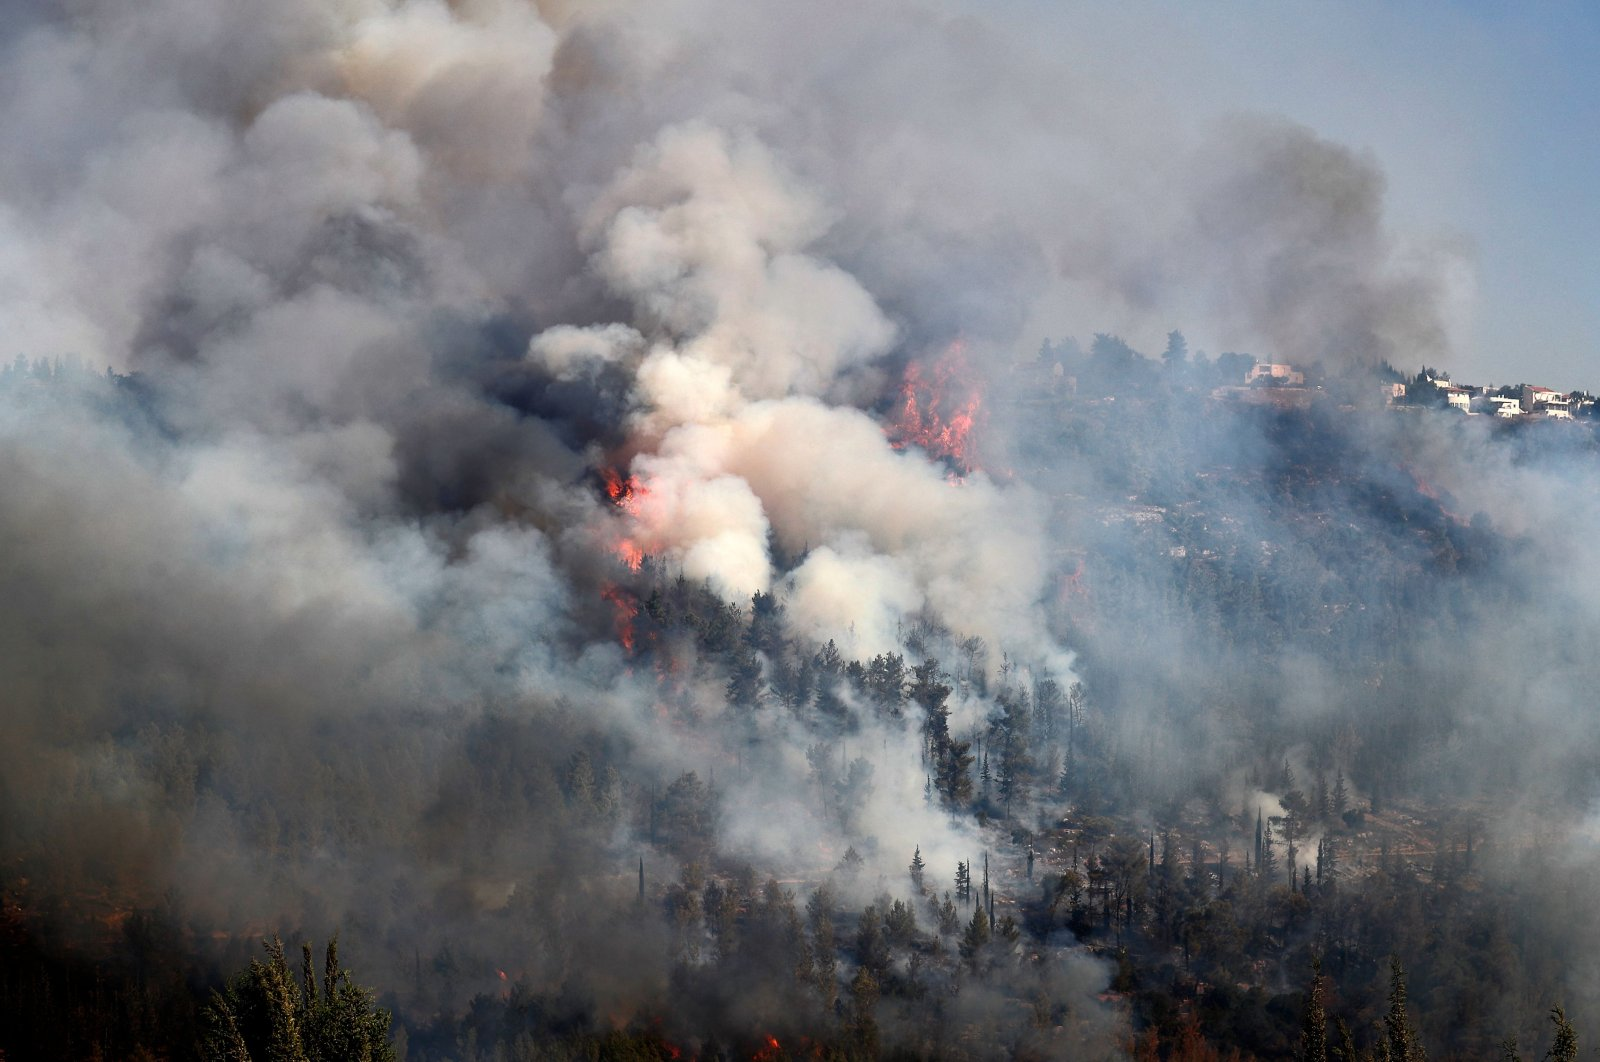 Smoke billows from a forest fire at the Jerusalem mountains near the village of Moshav Shoresh, Israel, Aug. 16, 2021. (AFP Photo)